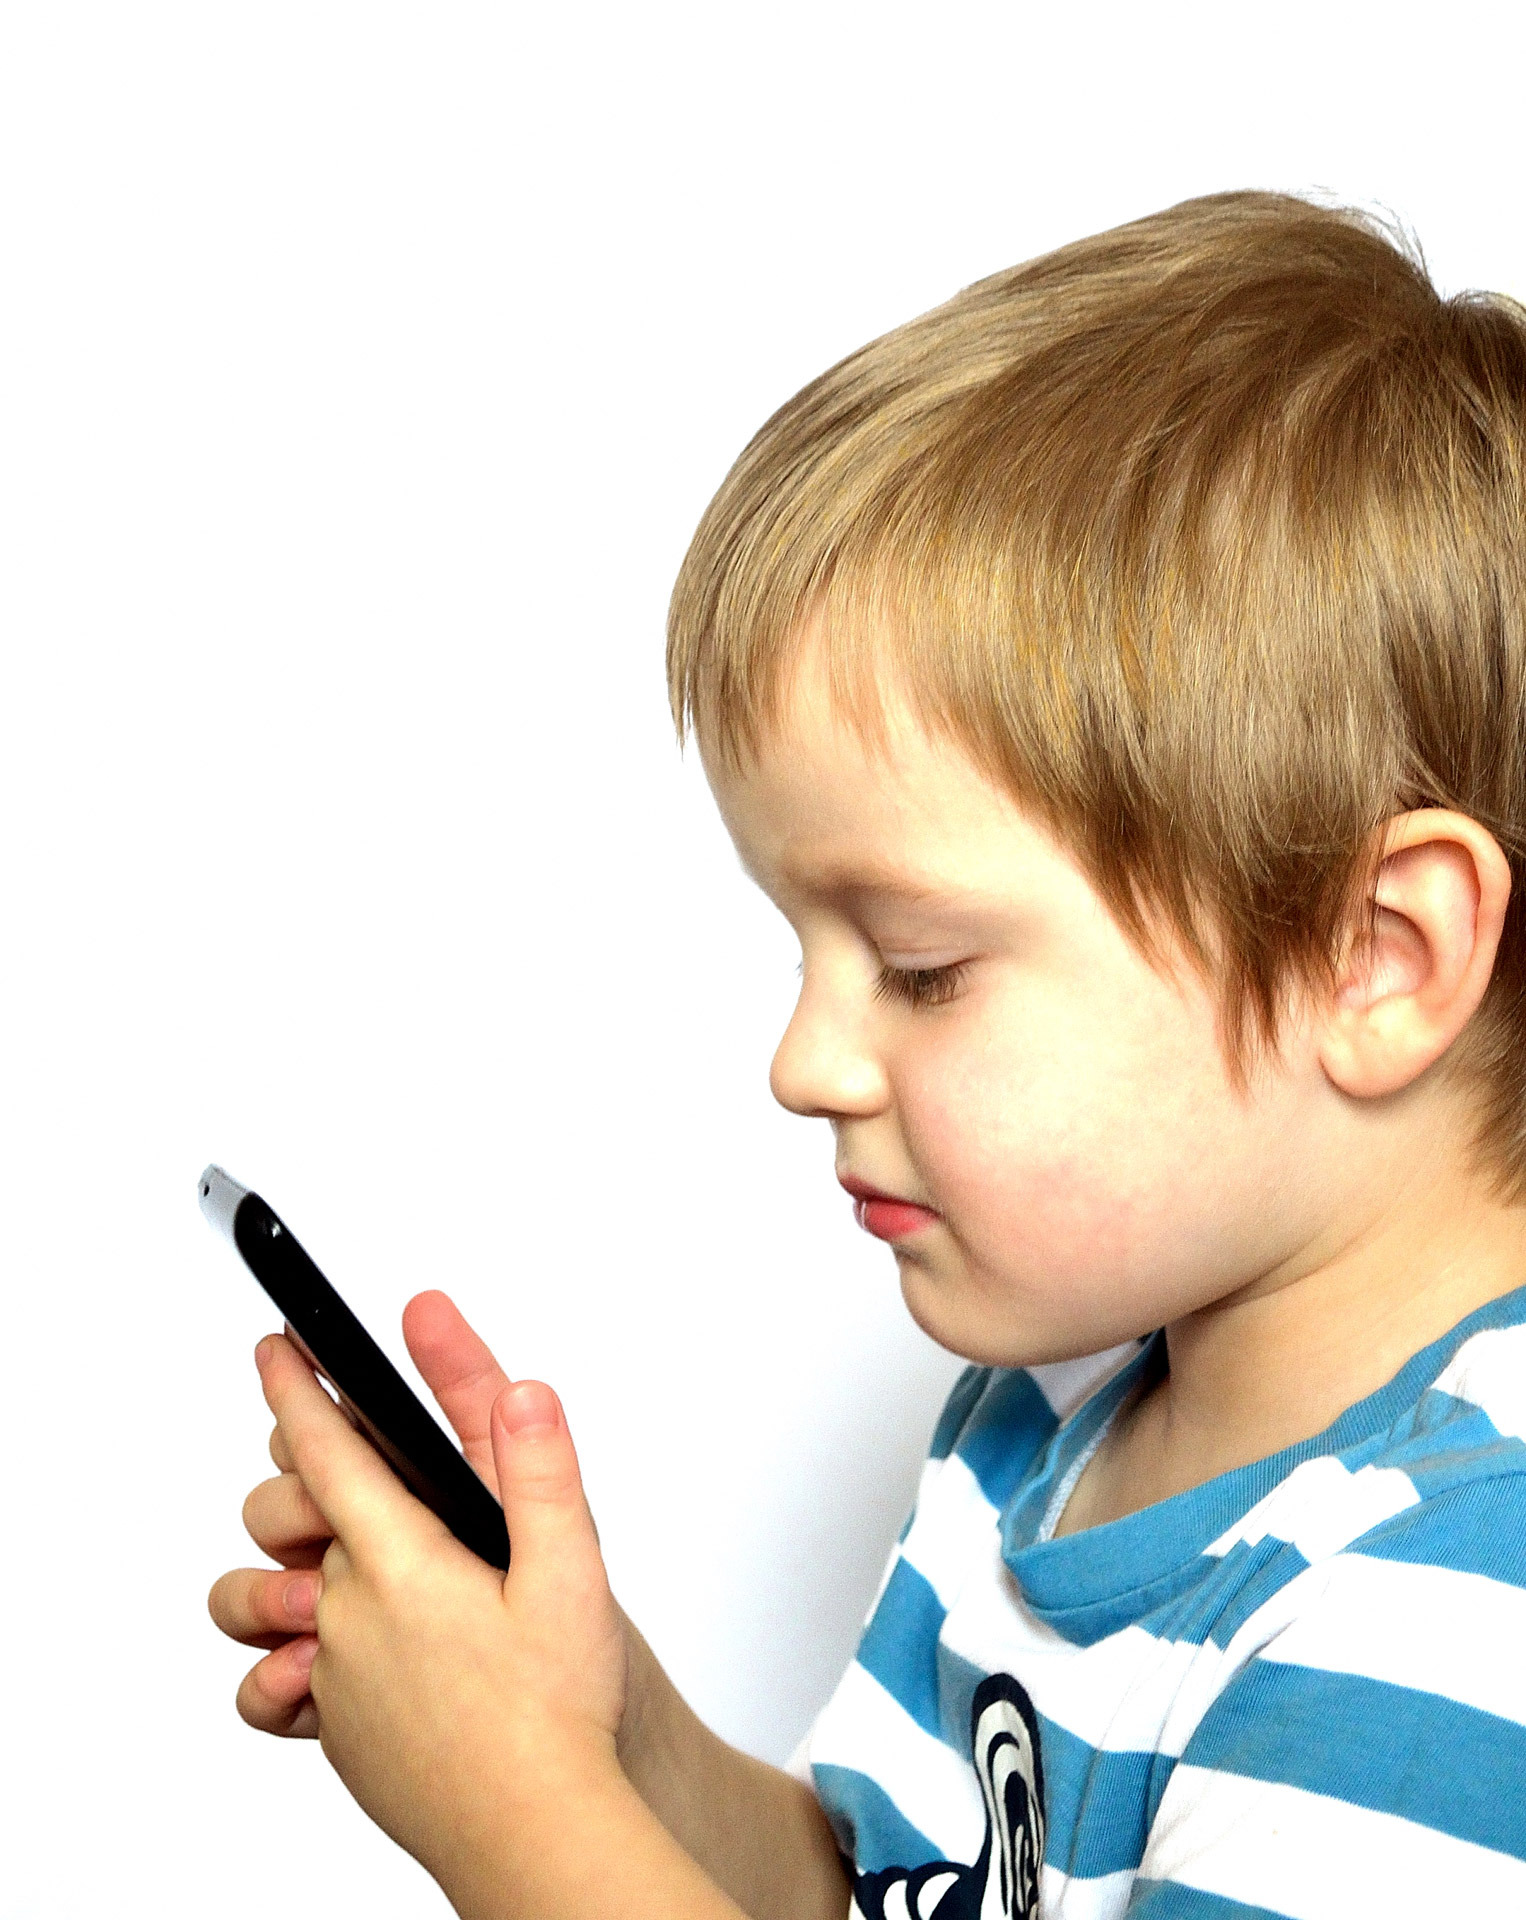 child-and-phone-1330009422EAw.jpg